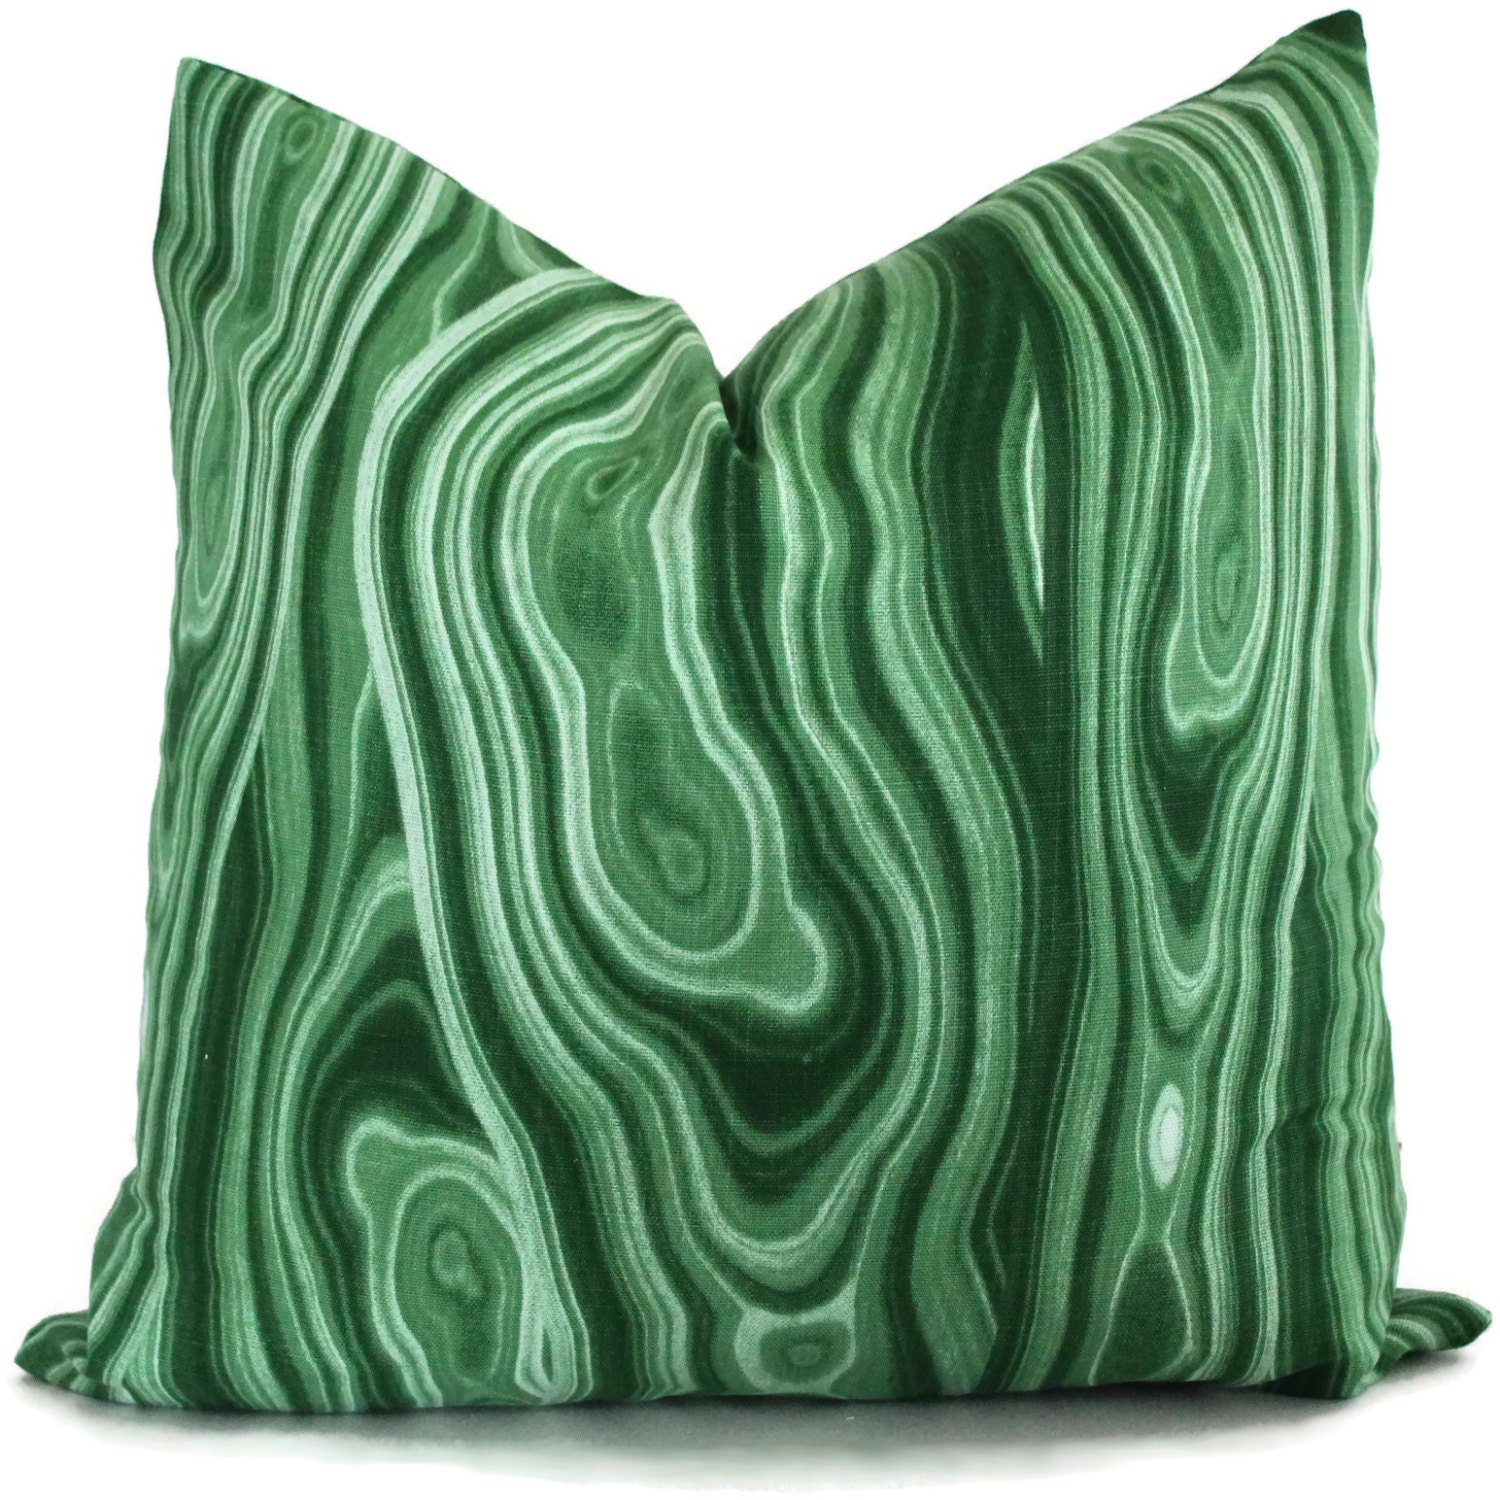 Green Malachite Pillow Cover Robert Allen 15x15 15x15 15x15